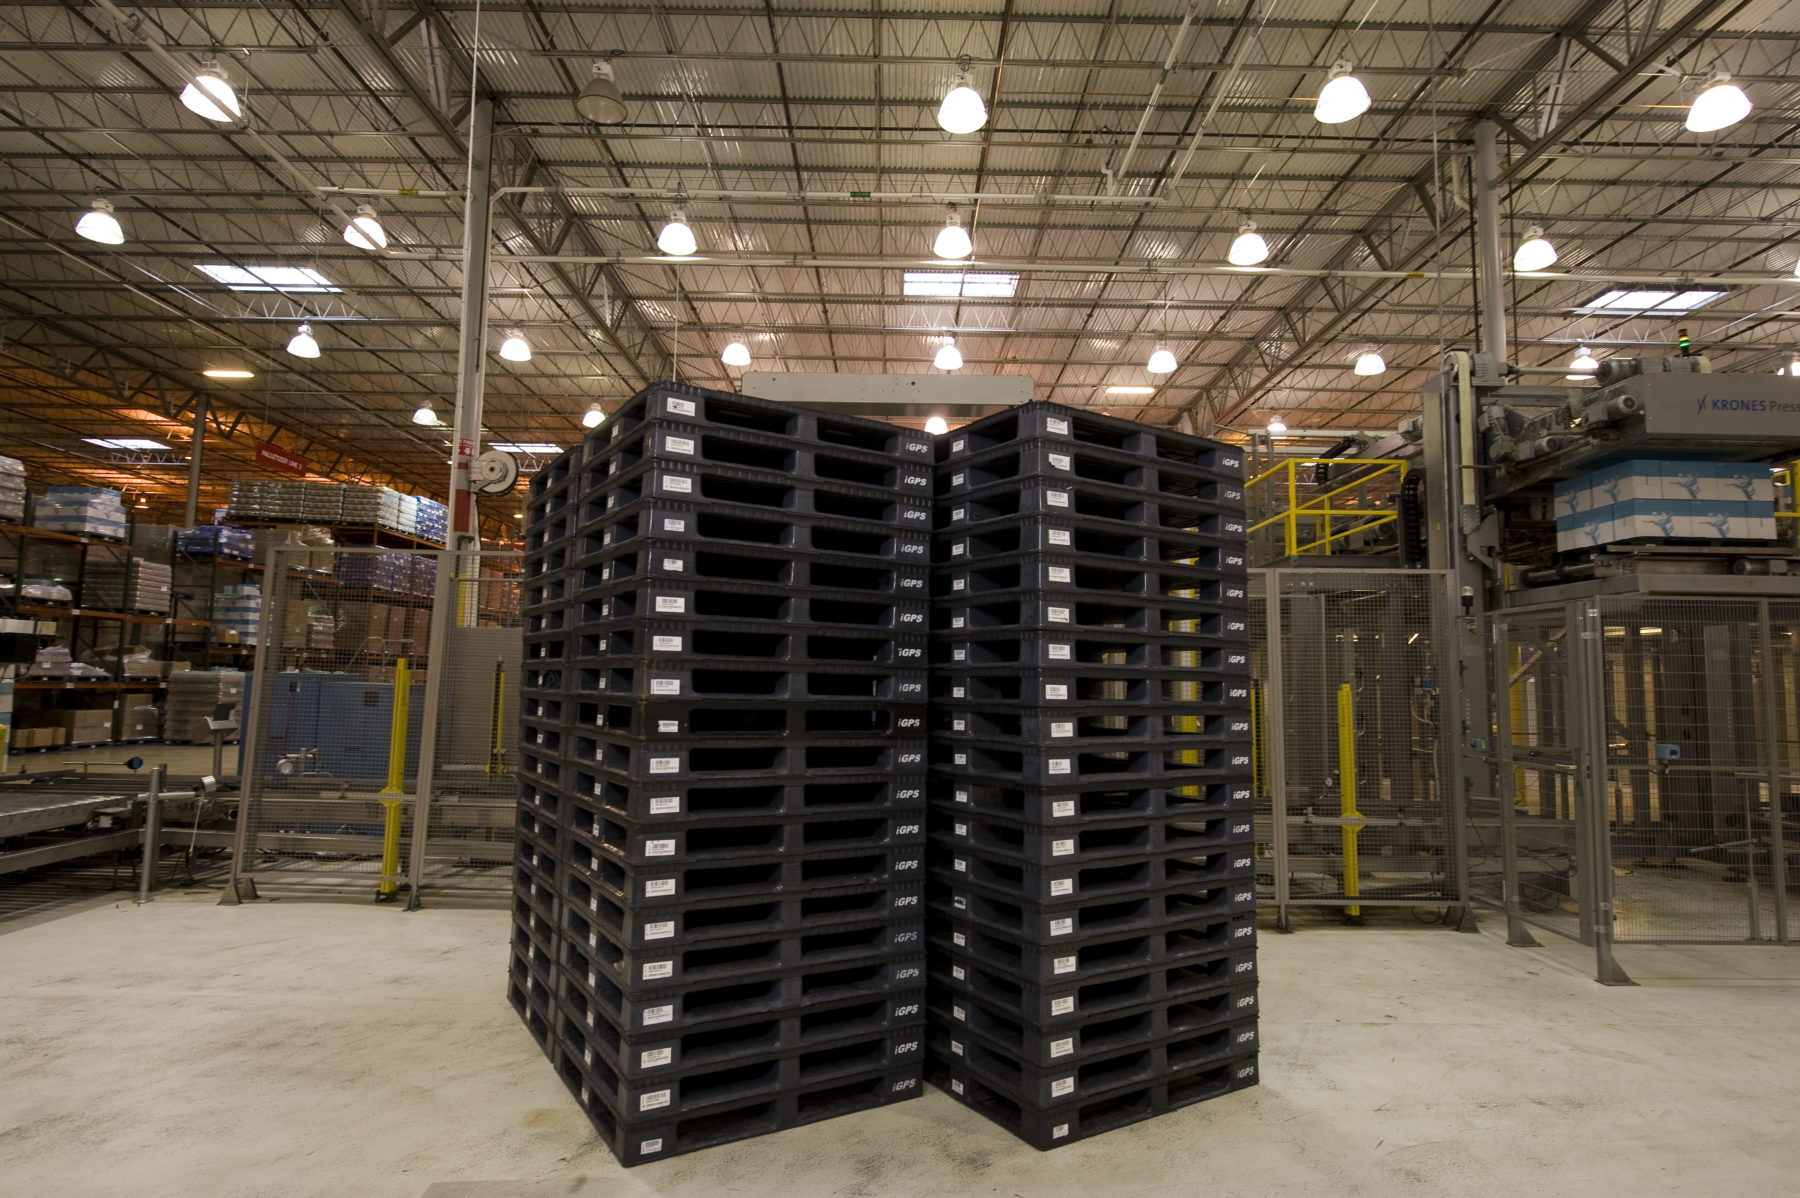 The future of wood pallets is use only when absolutely necessary, with greater use of plastic pallets.